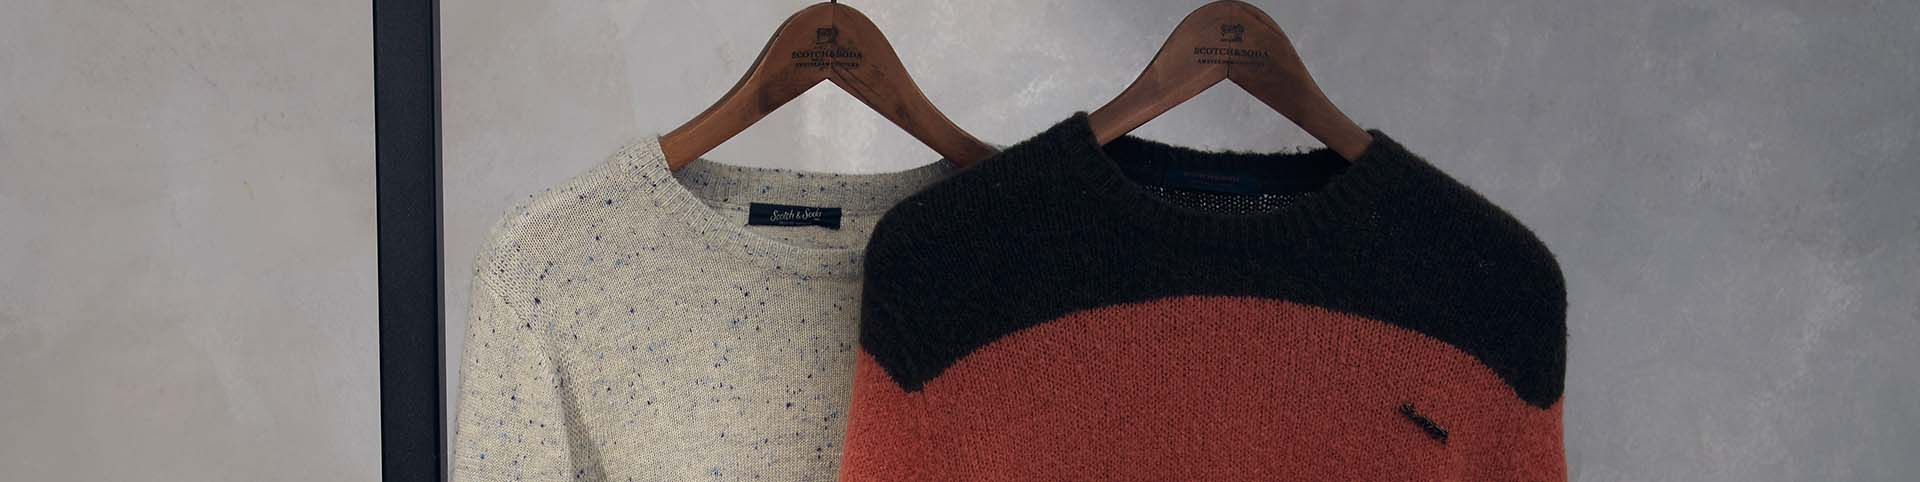 Pullovers & Cardigans